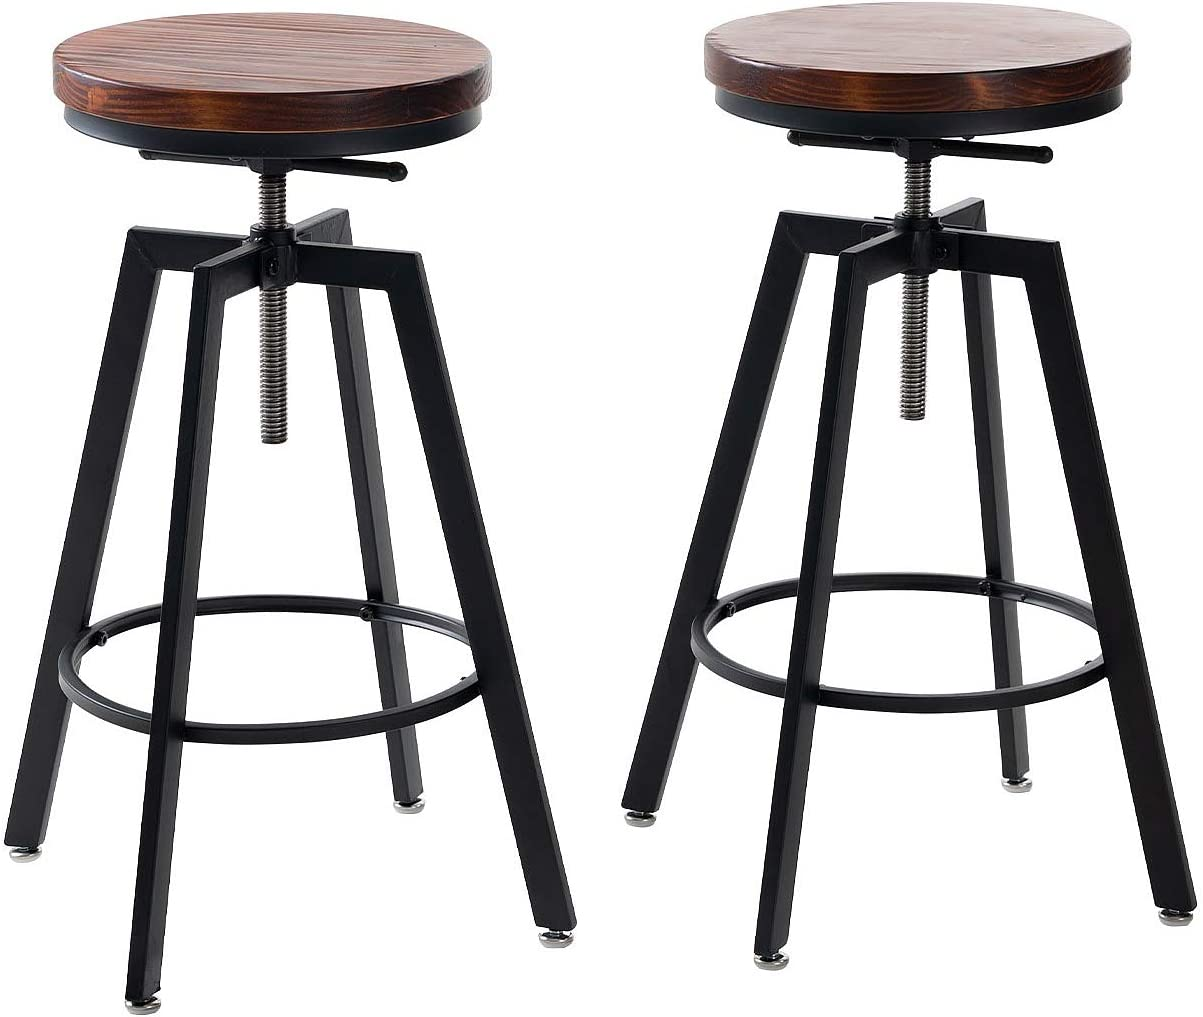 Adjustable Bar Stools for Kitchen Counter,Rustic Counter Height Bar Stools  Set of 10 - Natural Wood Seat - Rustic Brown (10)